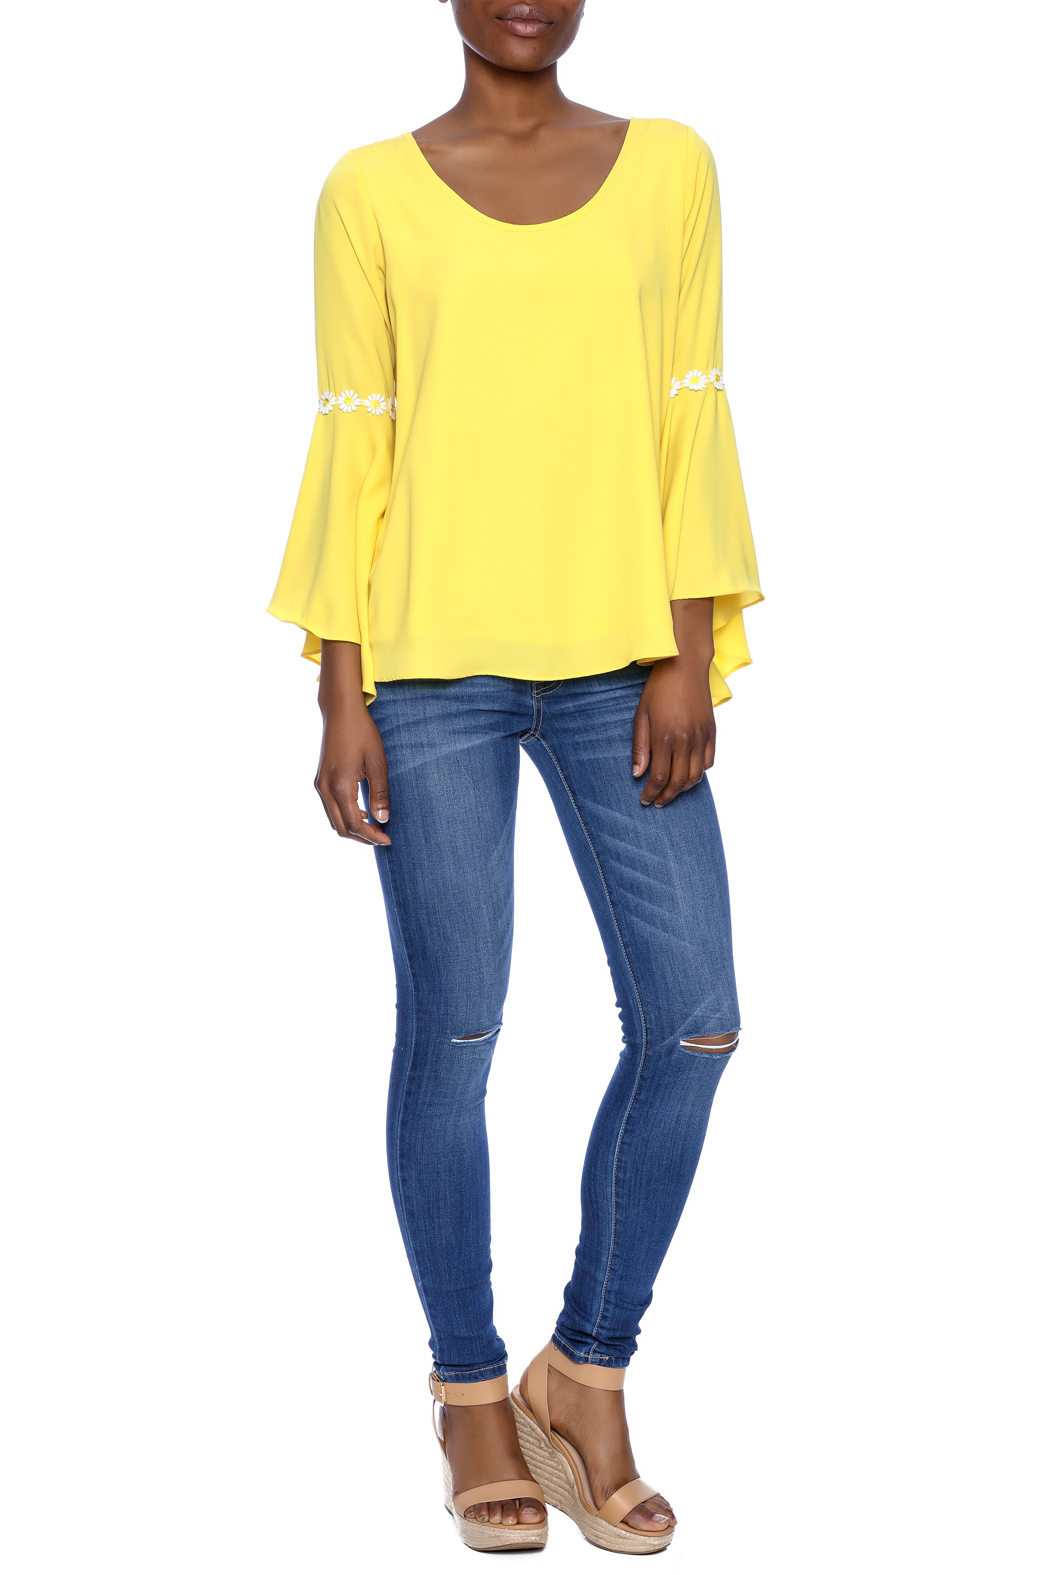 VaVa Yellow Blouse - Front Full Image